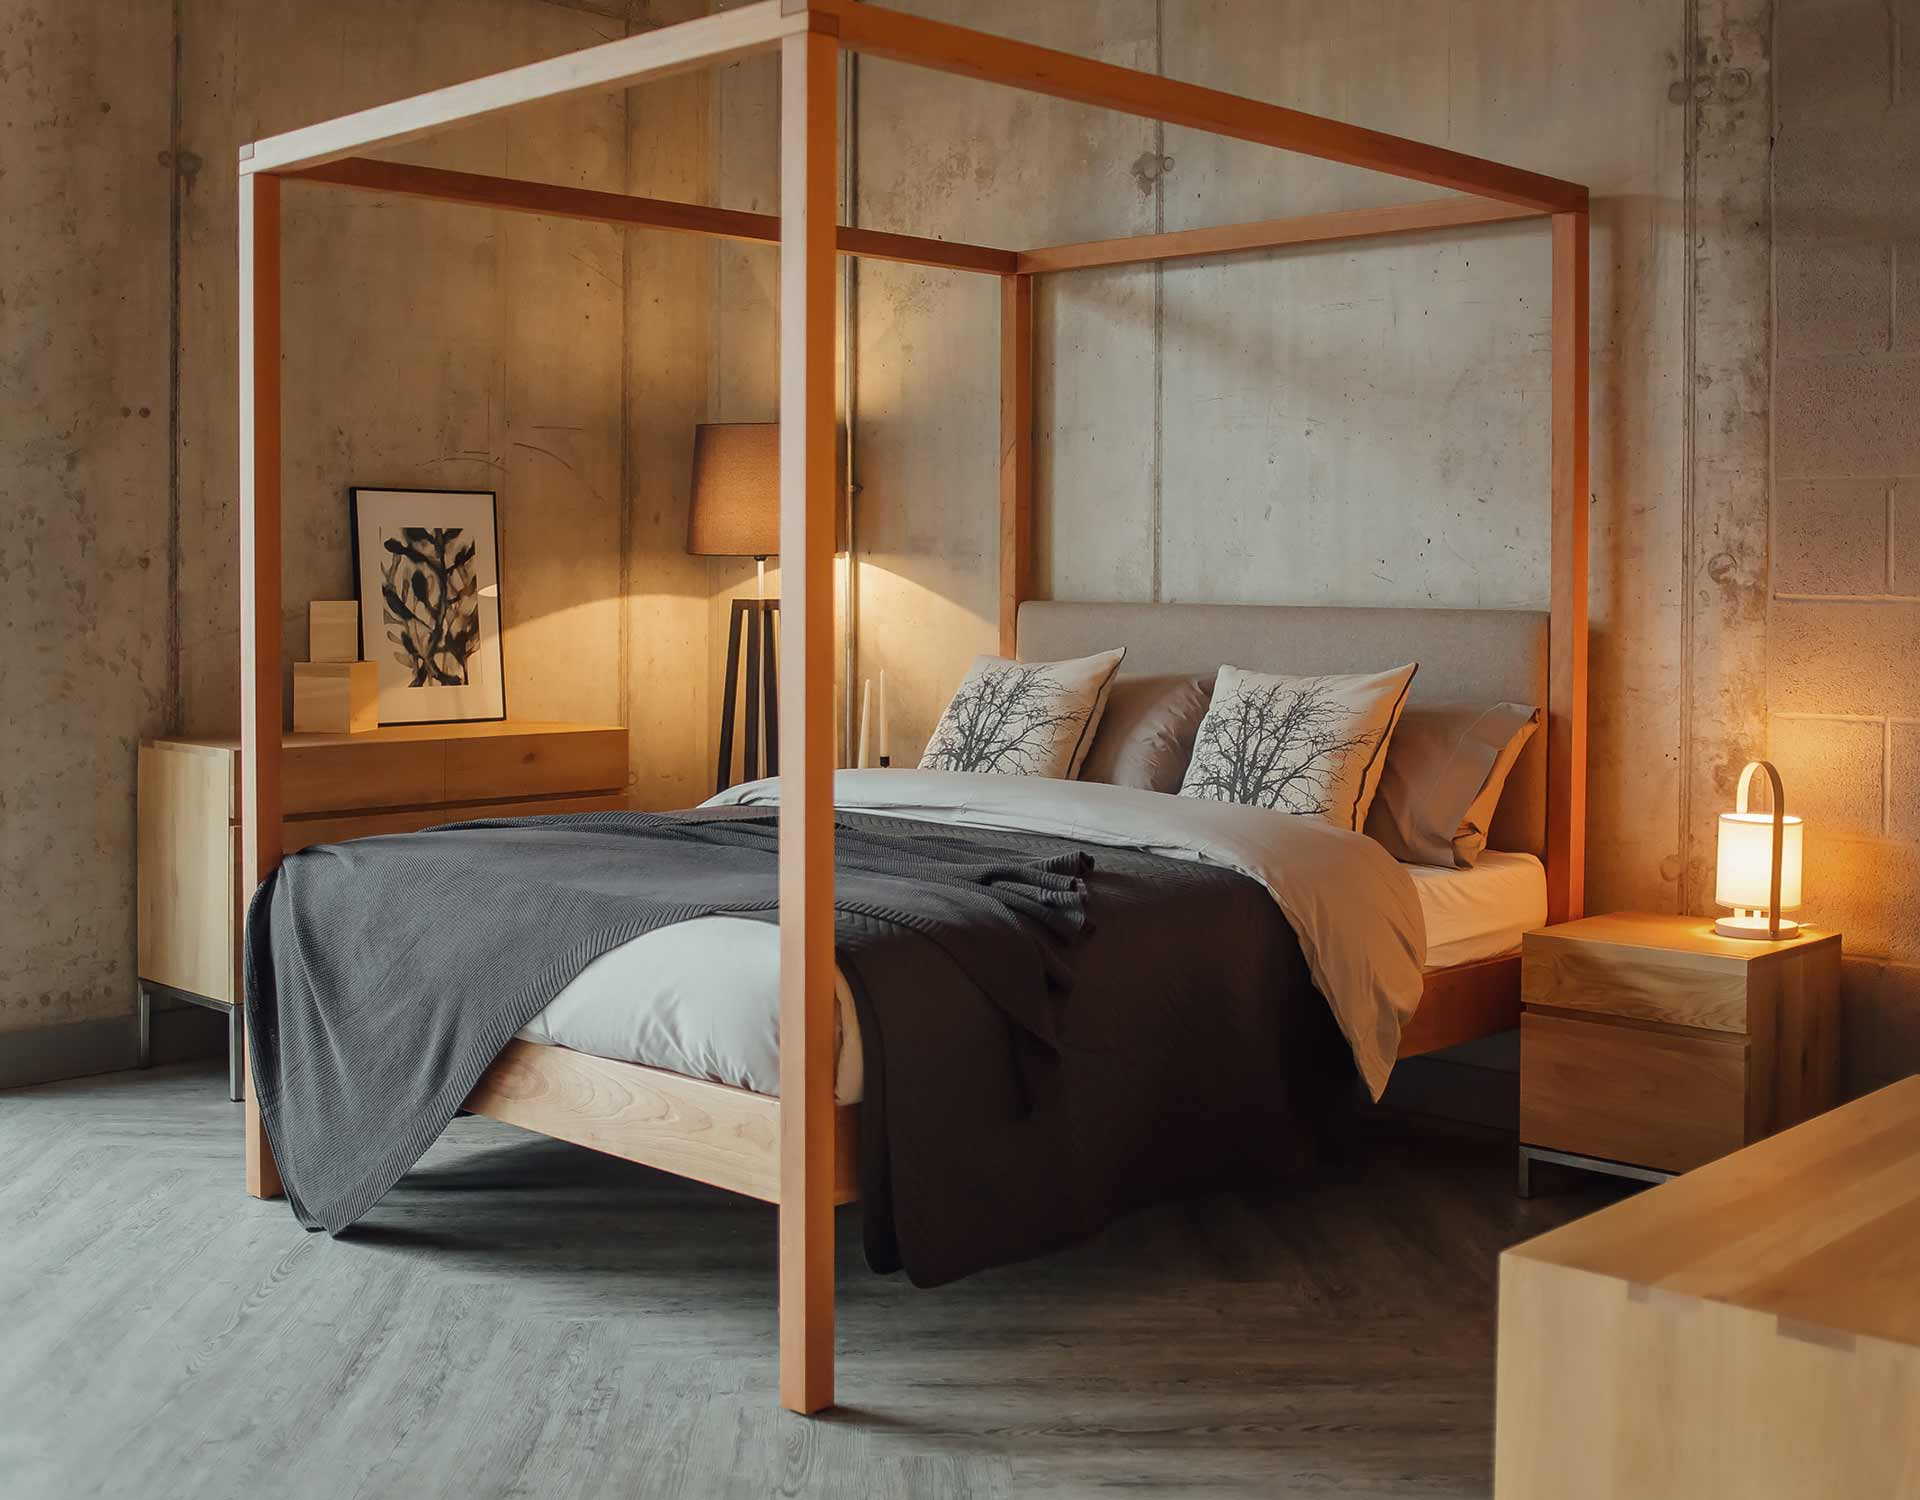 4 poster bed introducing the highland 4 poster bed bed 29559